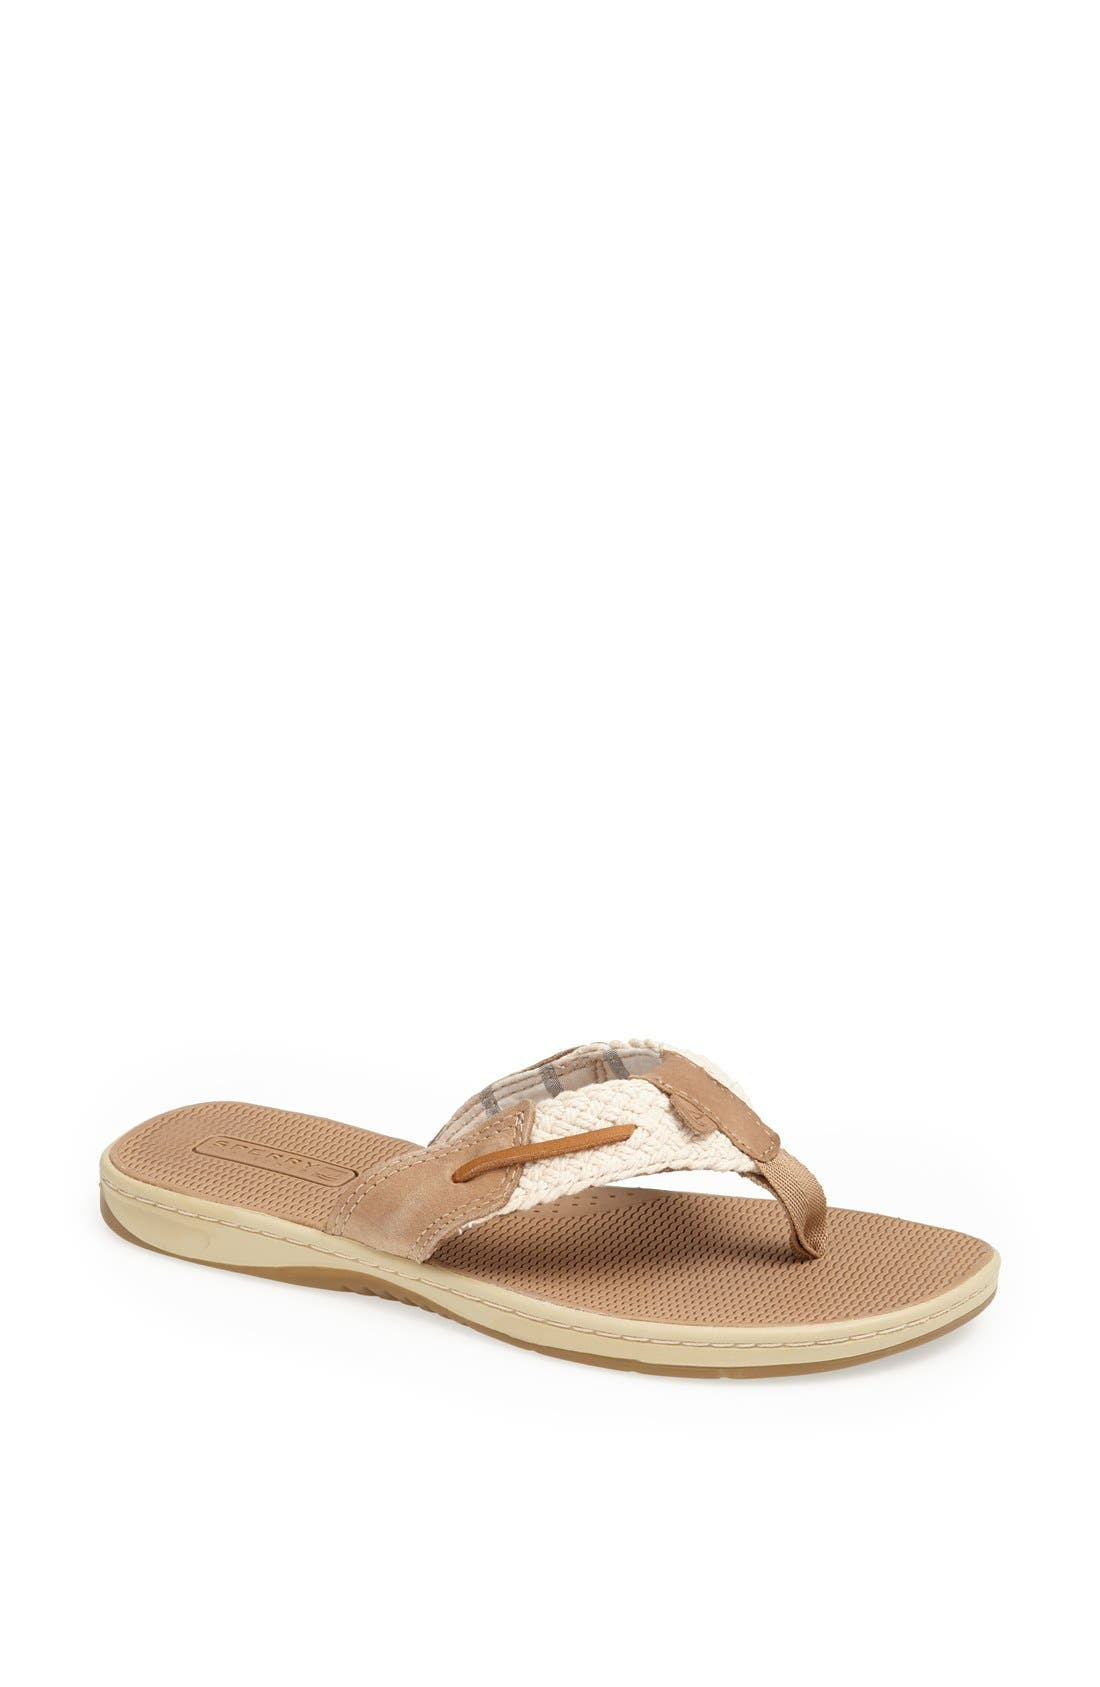 Main Image - Sperry 'Parrotfish' Thong Sandal